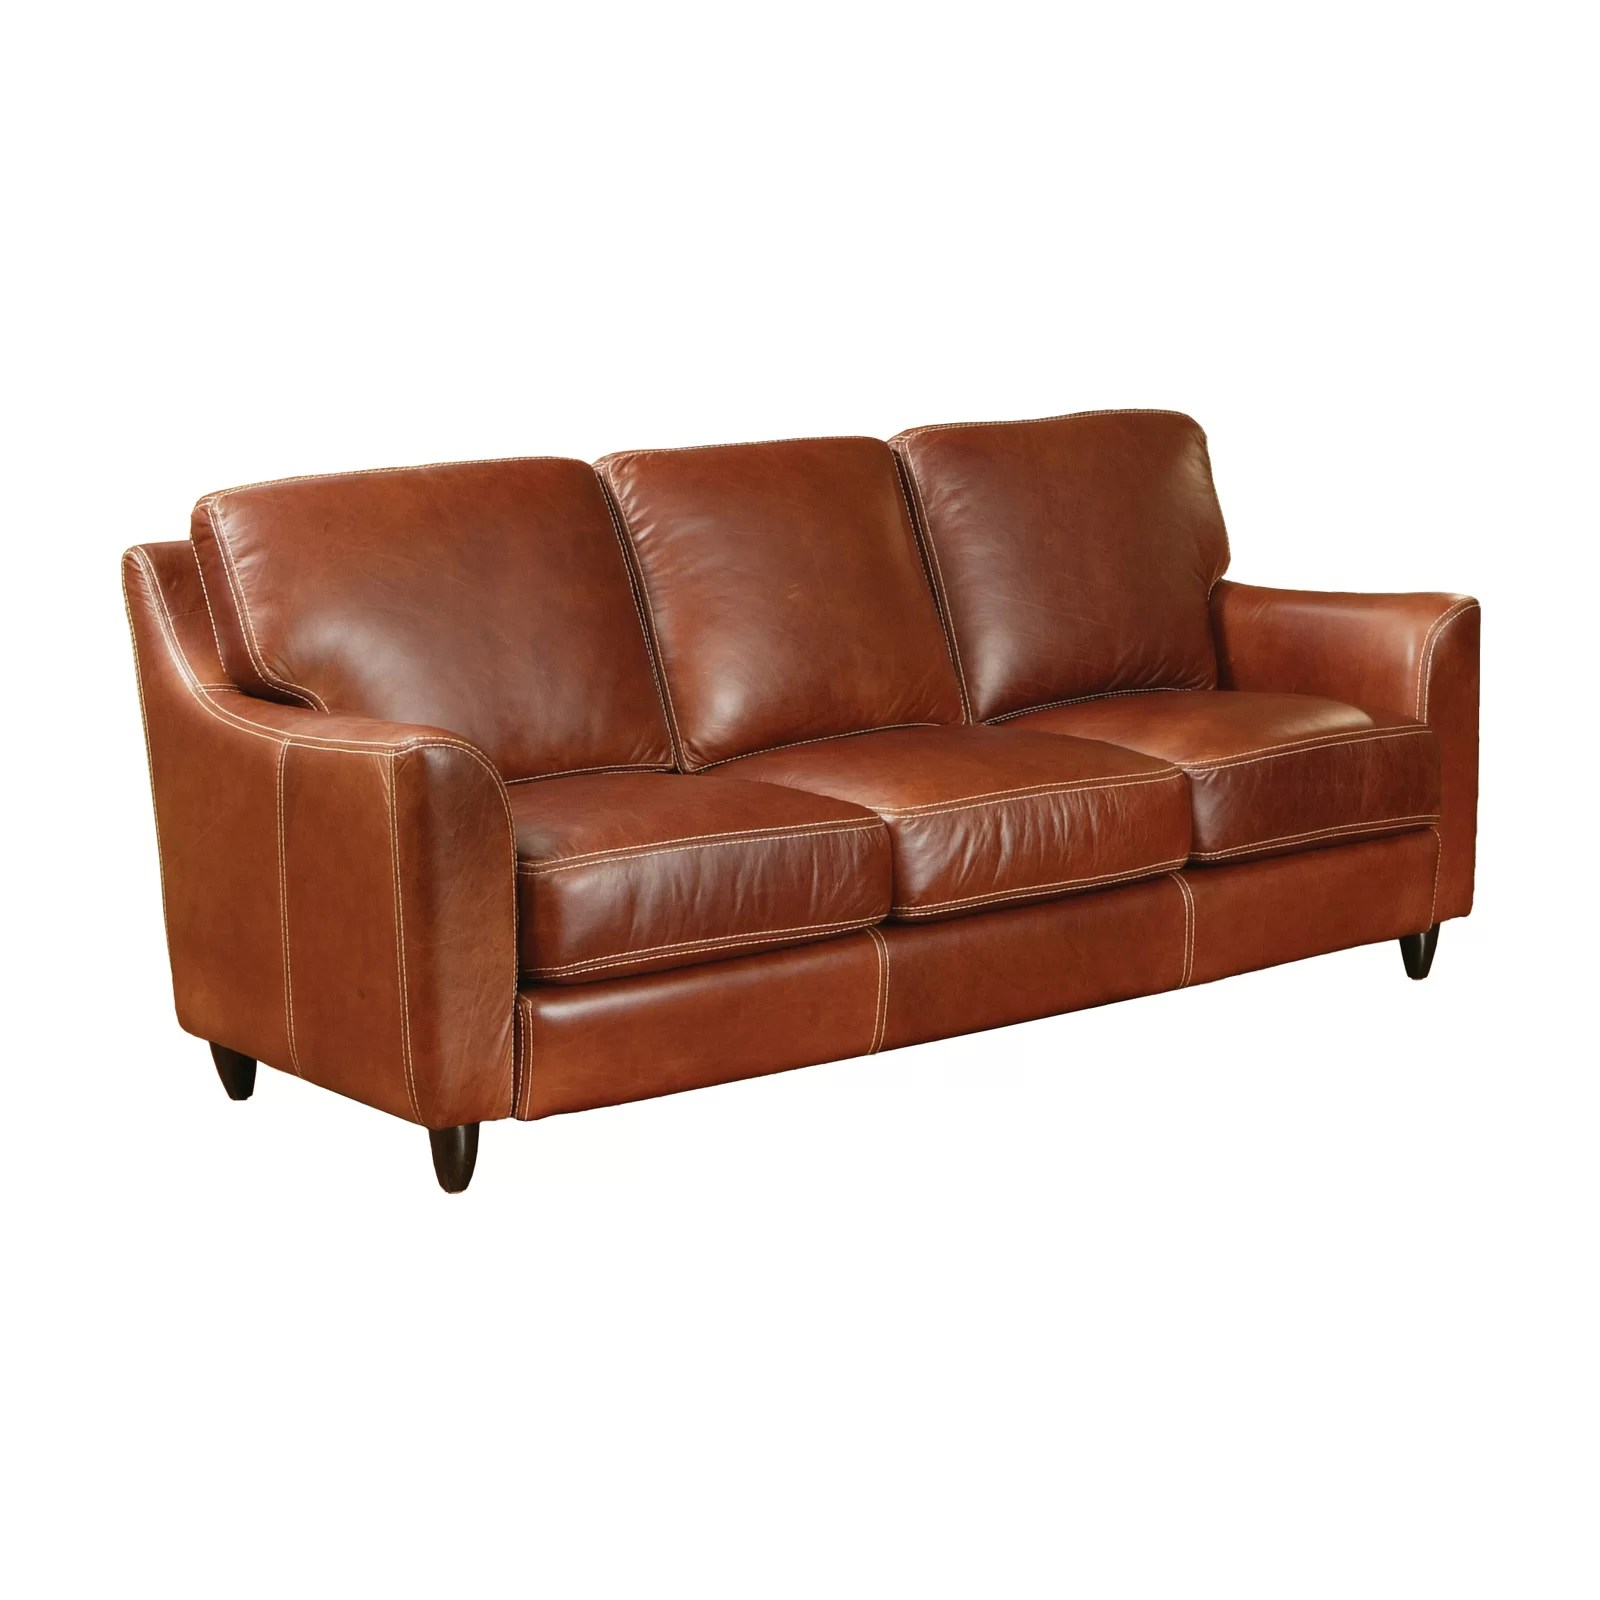 Leather Tapestry Sofa Hmmi Us. Attractive Omnia Leather Sofa